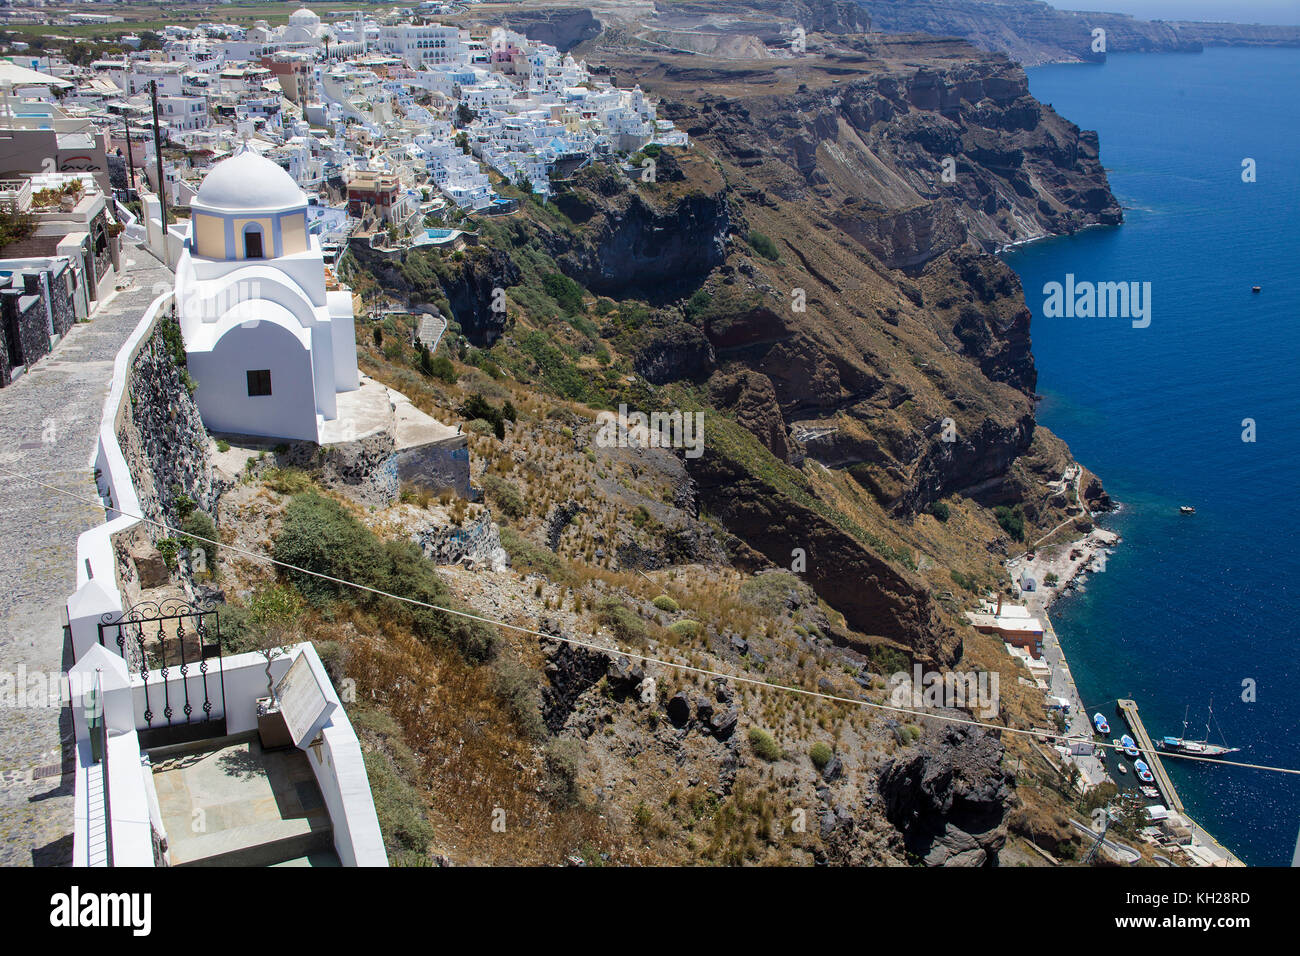 View from the crater edge path down to Thira and the old harbour, Santorin island, Cyclades, Aegean, Greece Stock Photo